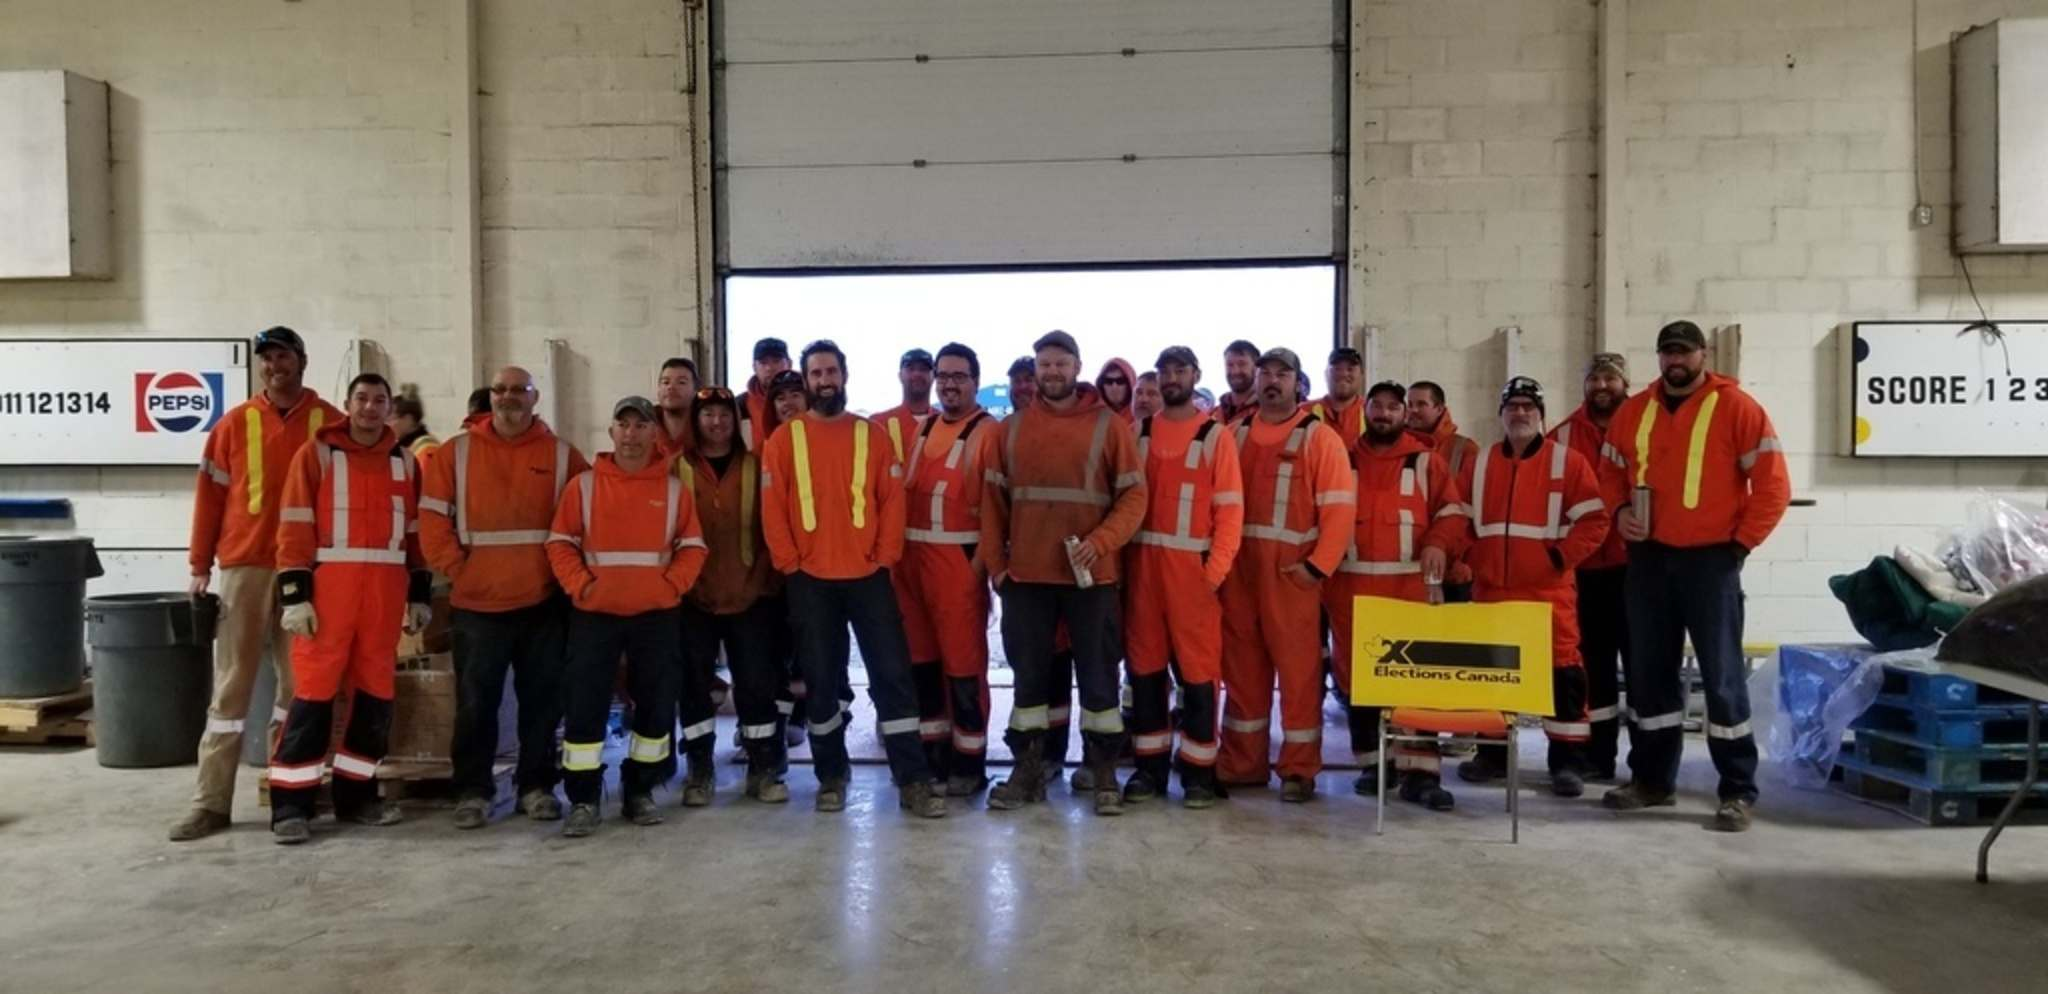 Manitoba Hydro workers after voting at the polling station set up in Lundar on Monday. (Supplied)</p>